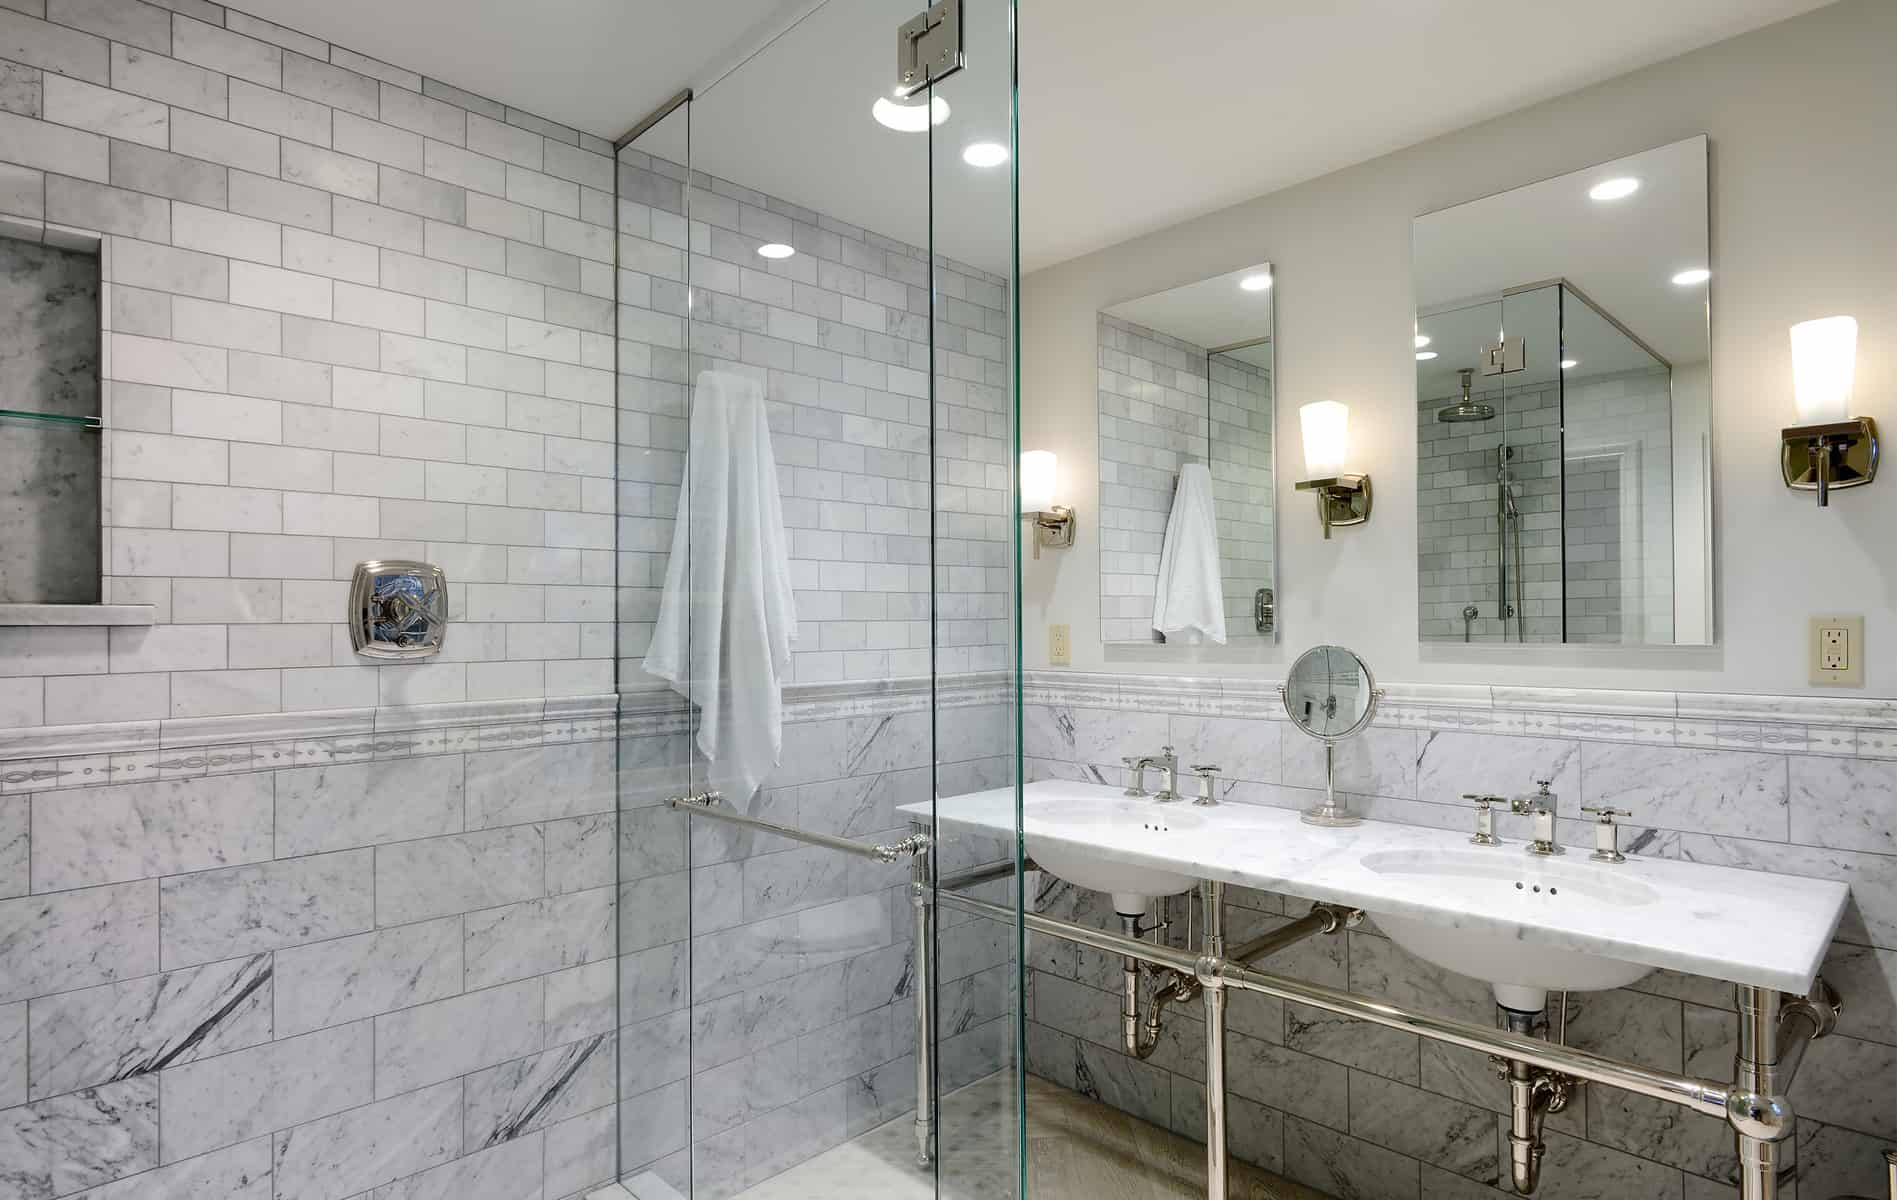 Bathroom Remodeling 7 smart strategies for bathroom remodeling - biederman real